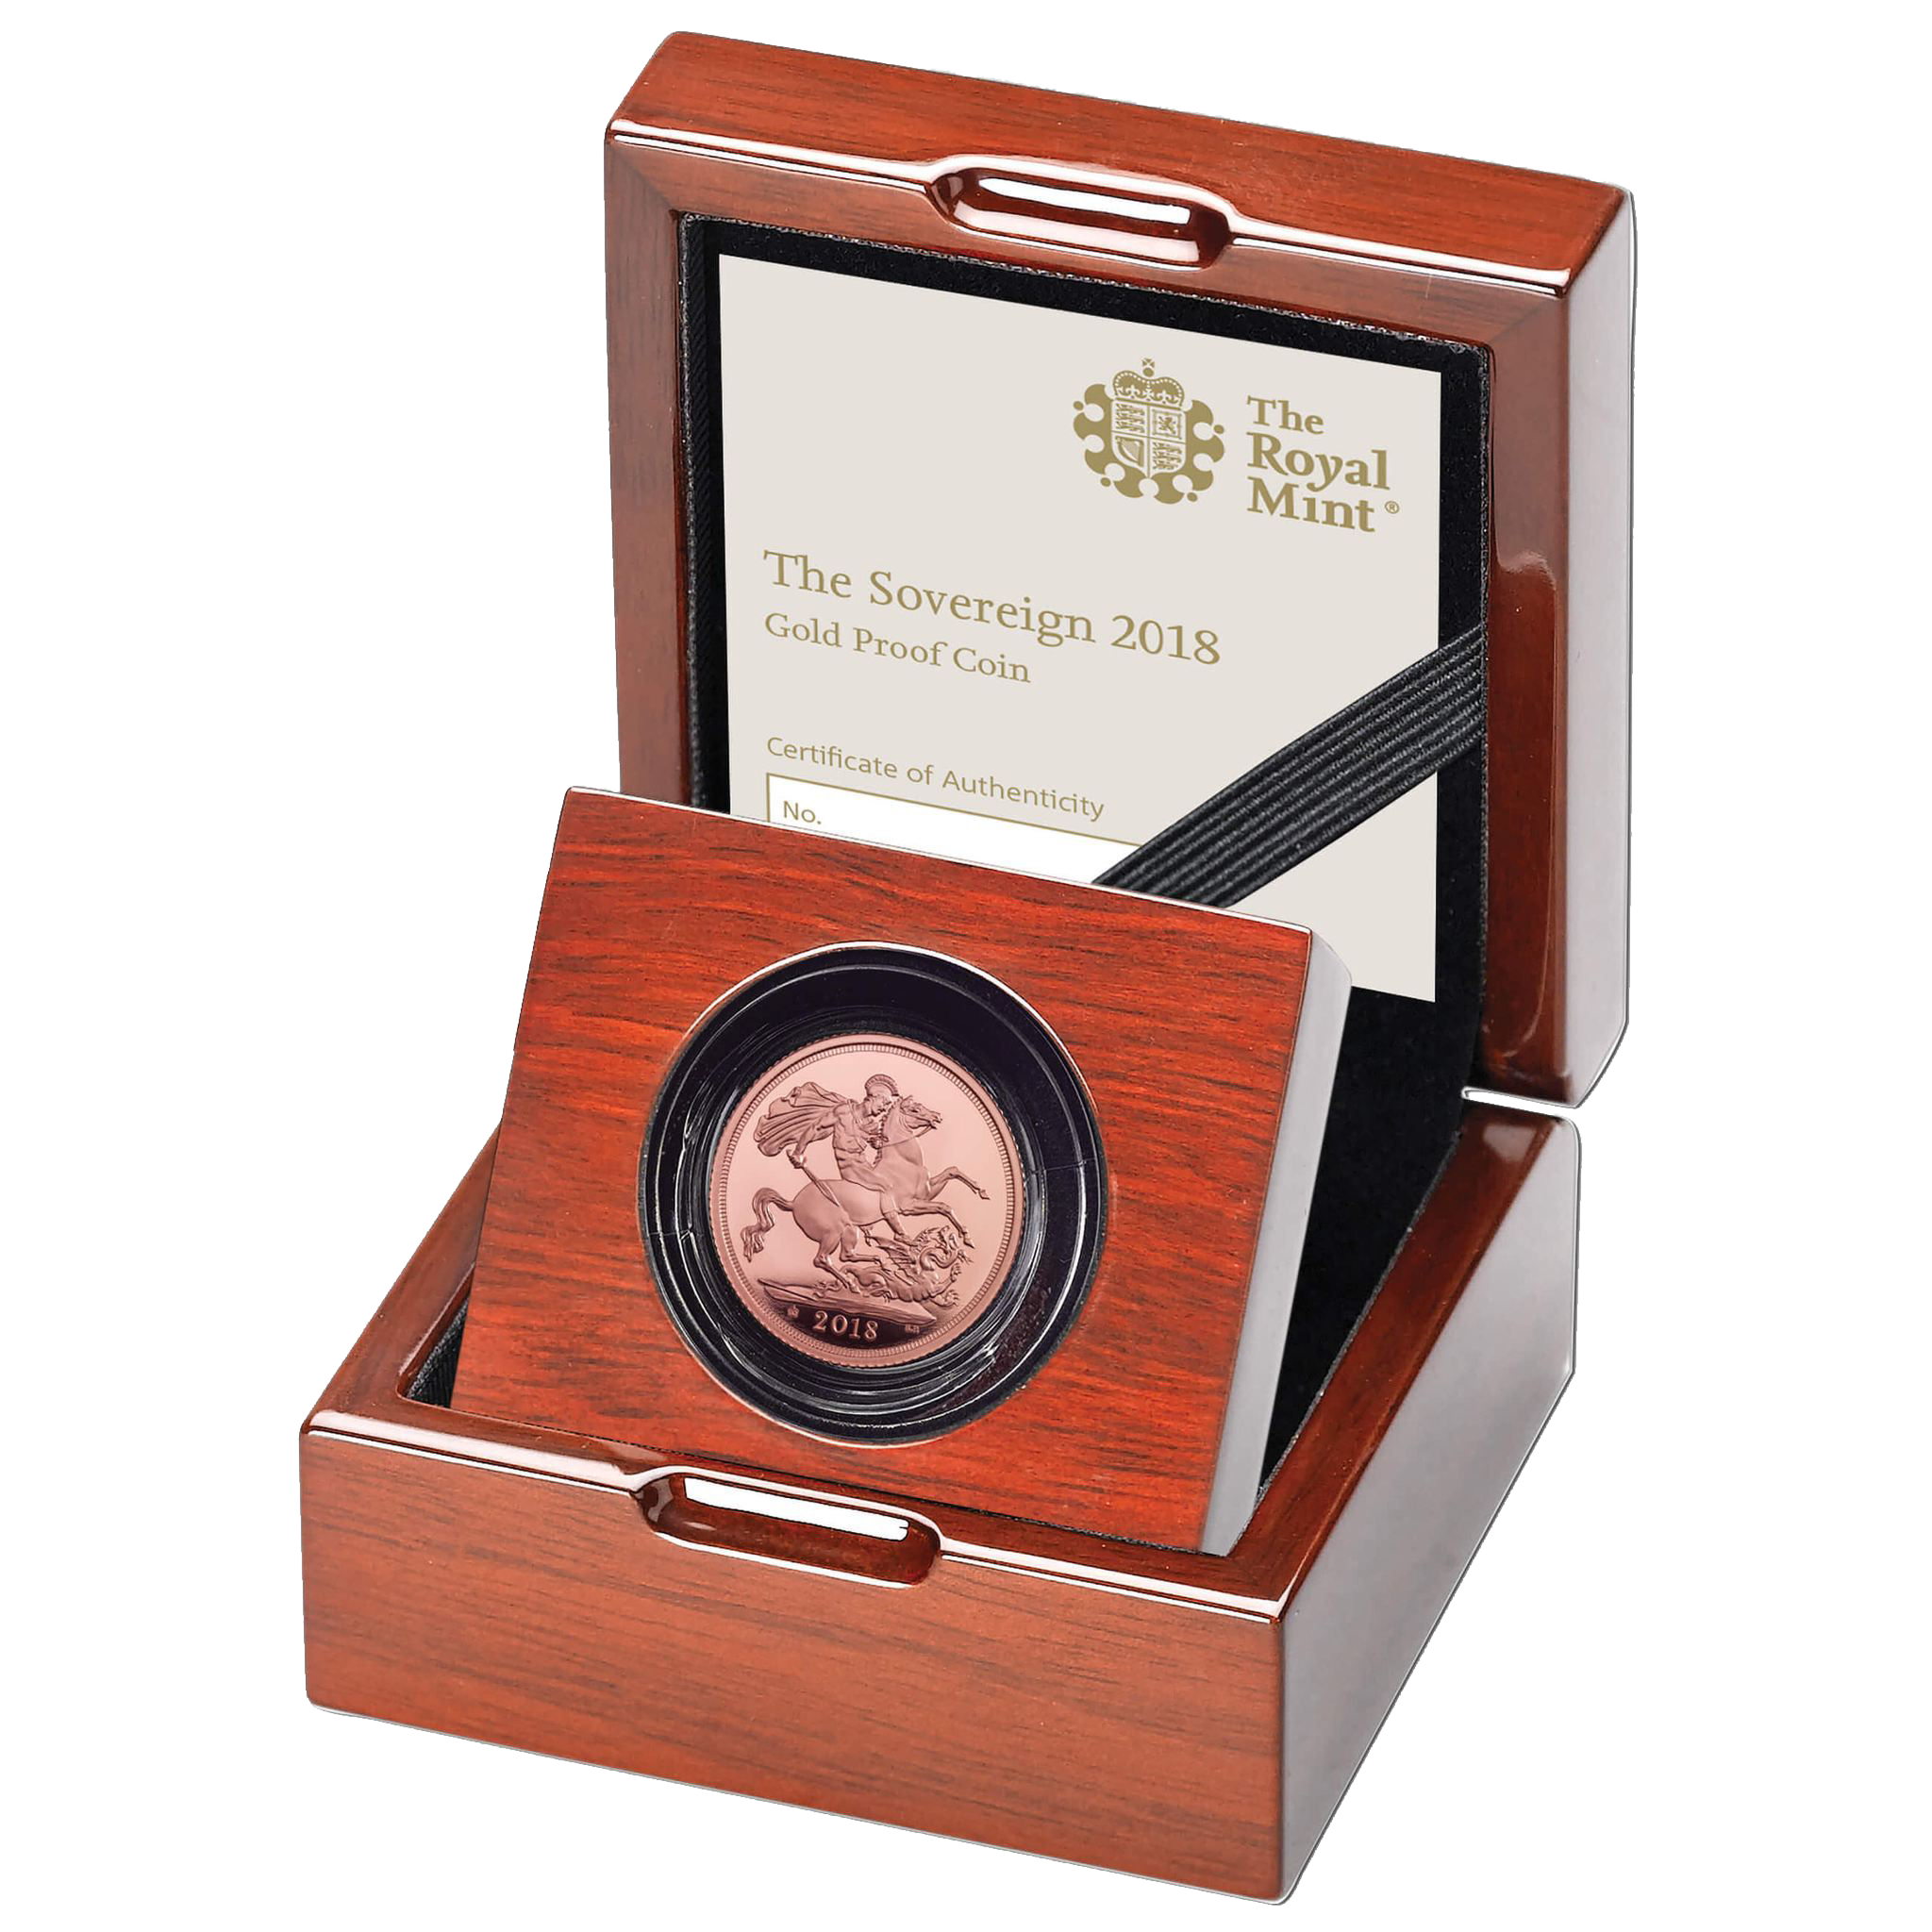 2018 Gold Sovereign Proof Coin, boxed and certificated